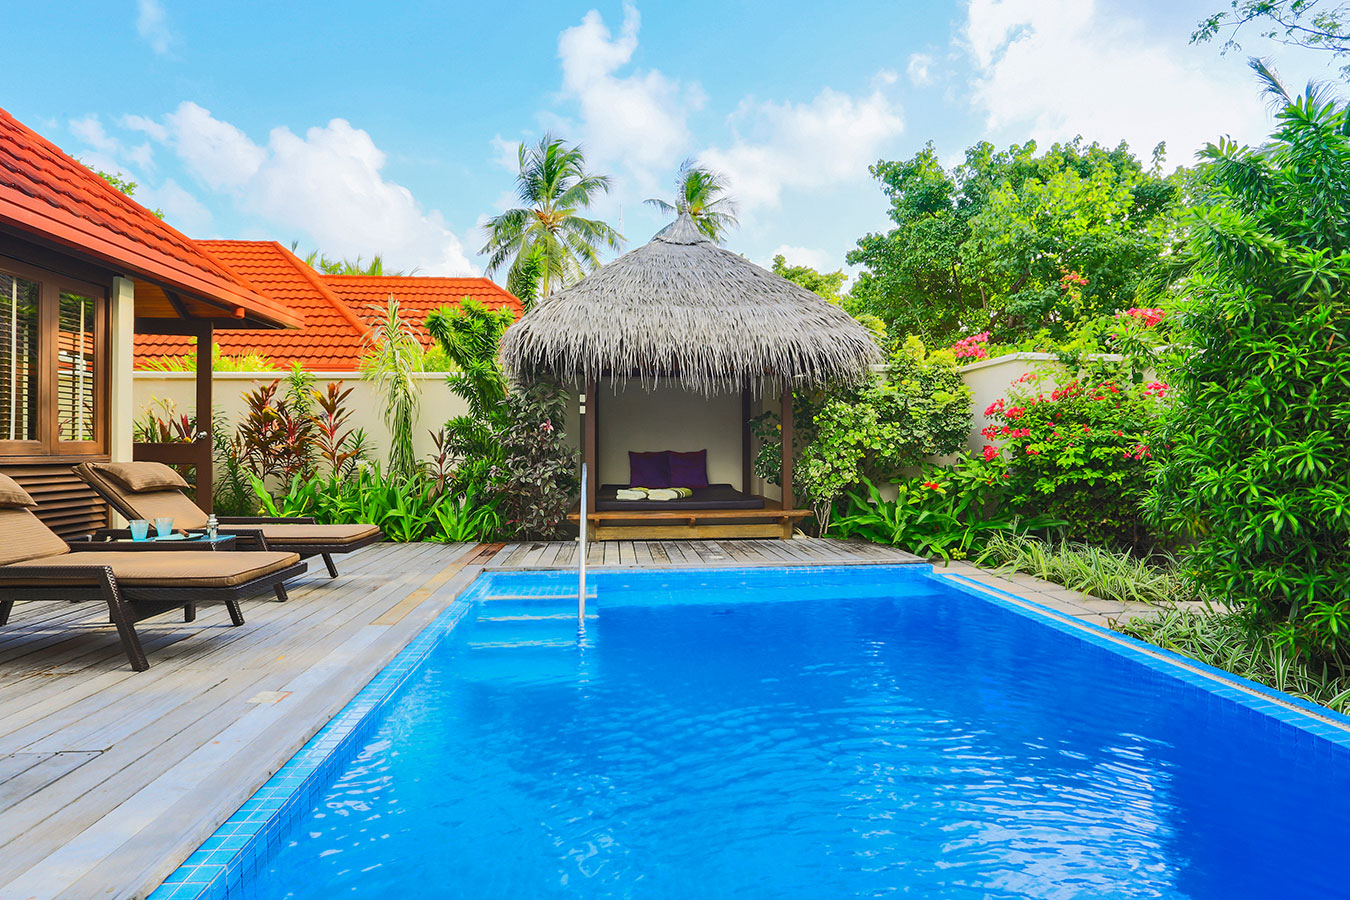 Kurumba Maldives - Royal Residence One of Two Pools Image - Maldives Resorts Pool Villa